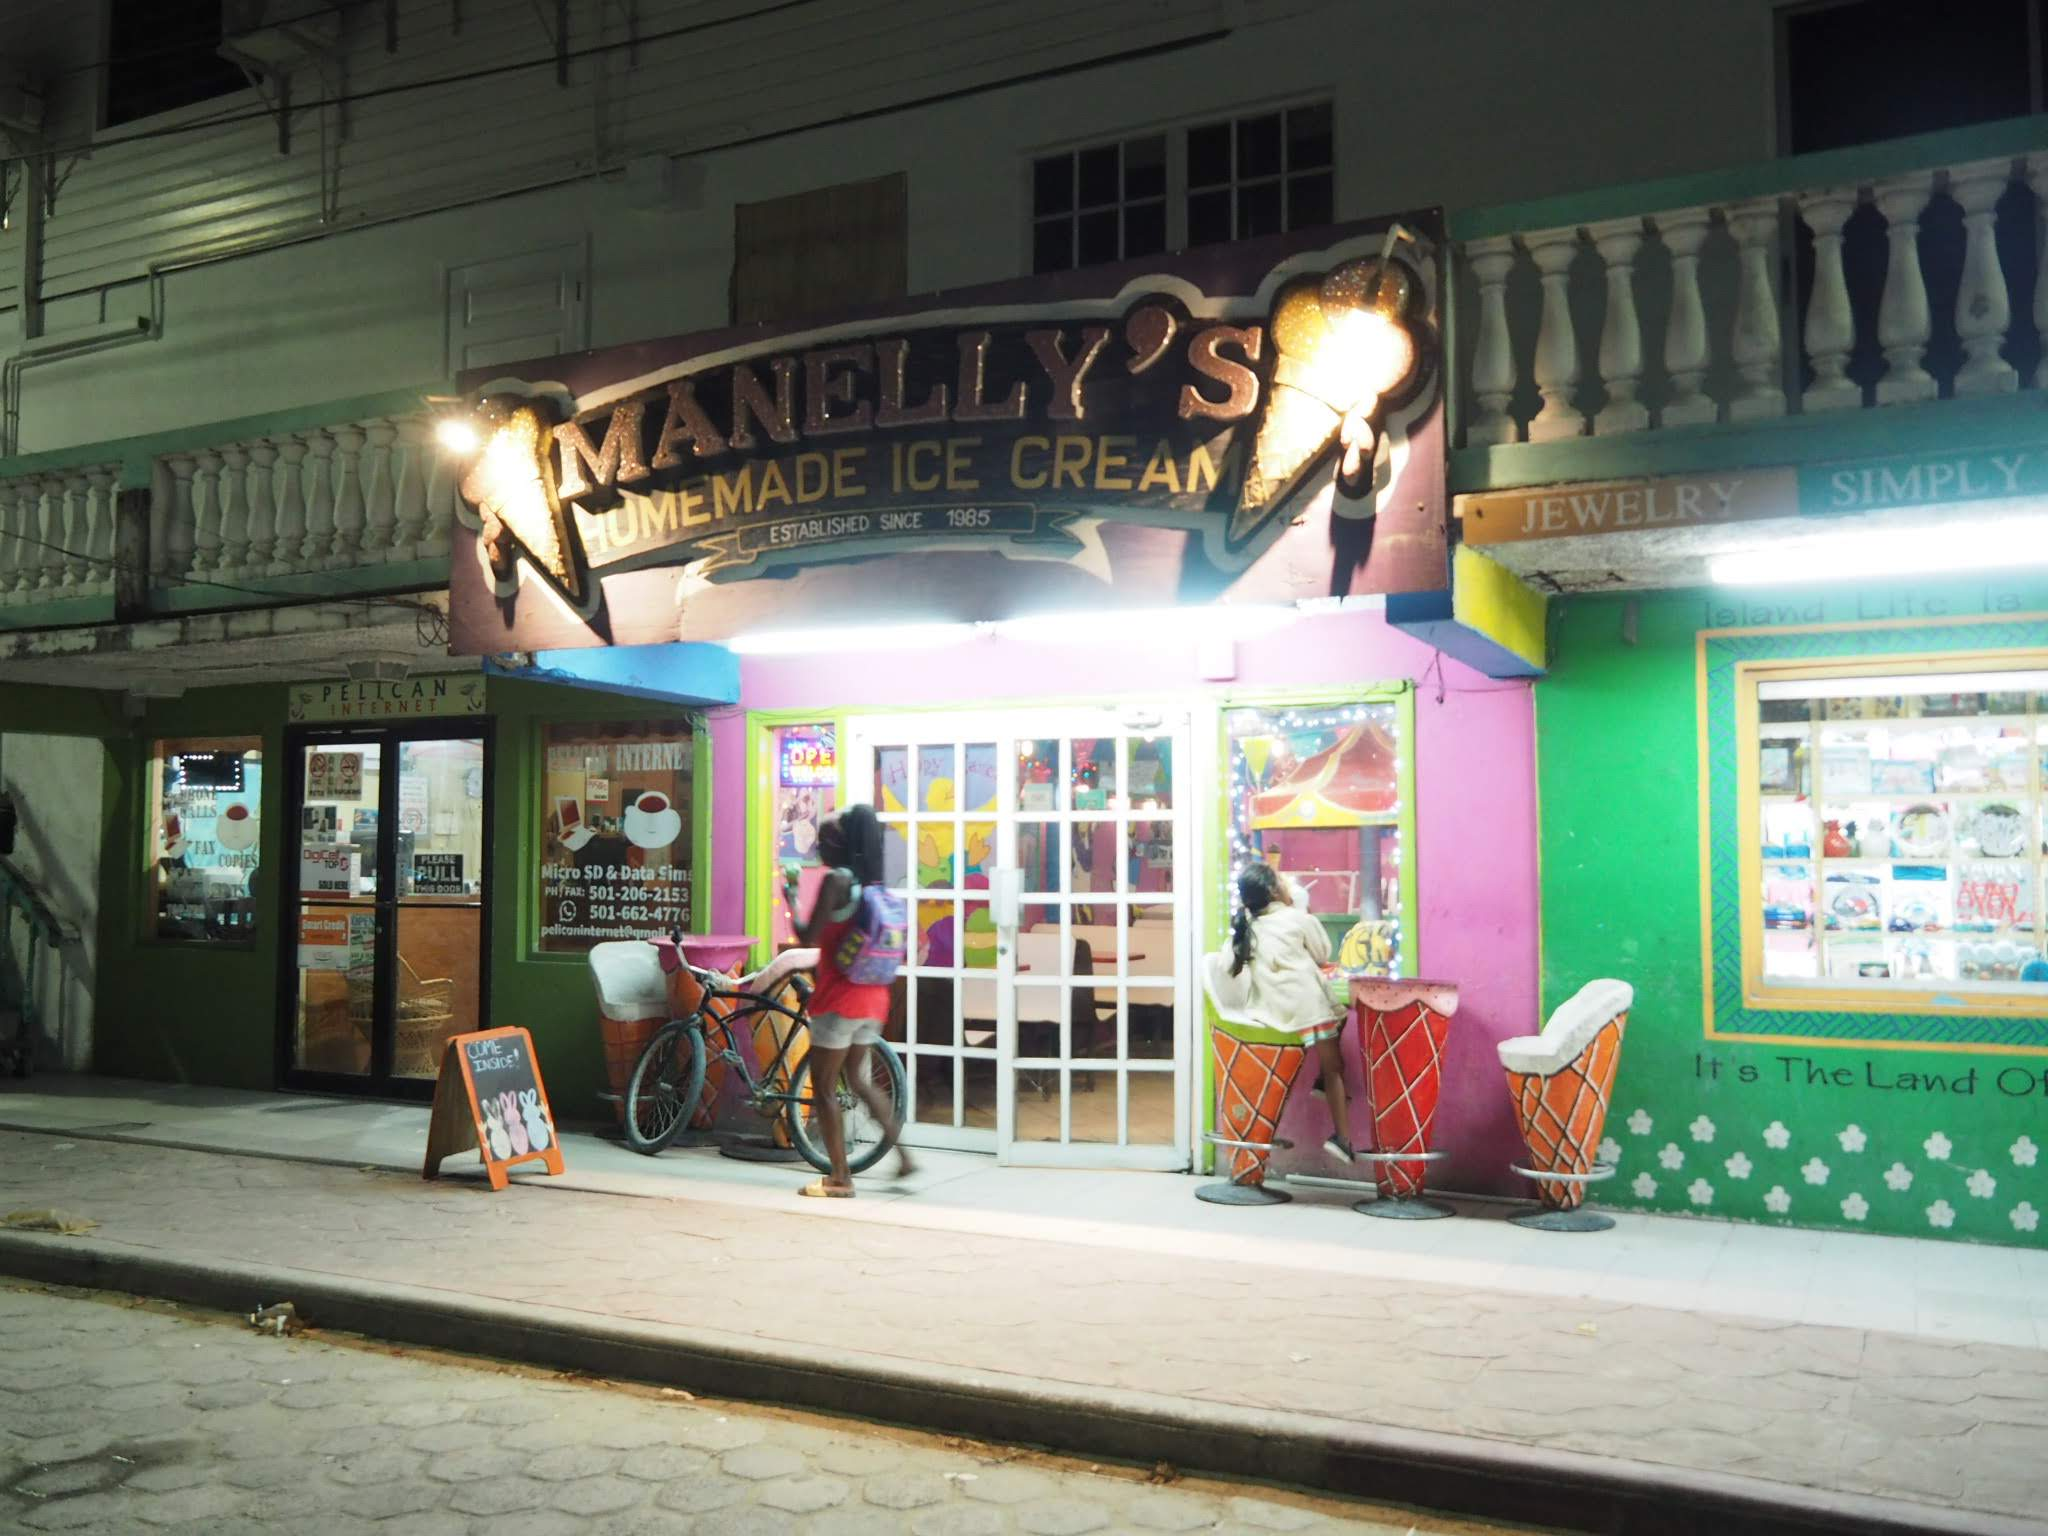 Manelly's